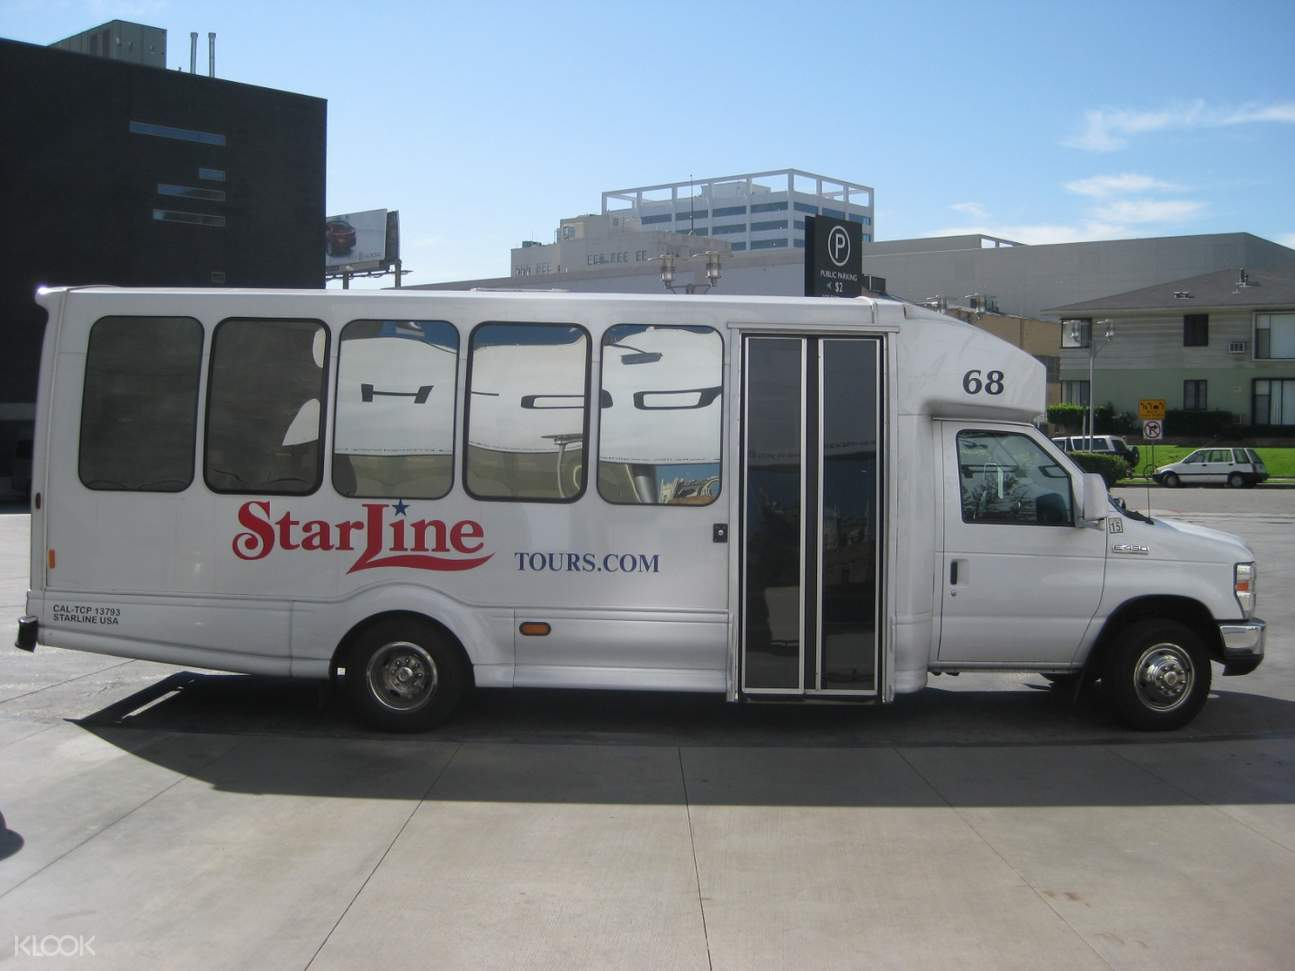 [Sale] Shared Round Trip Transfers between Los Angeles and Disneyland Park  by Starline